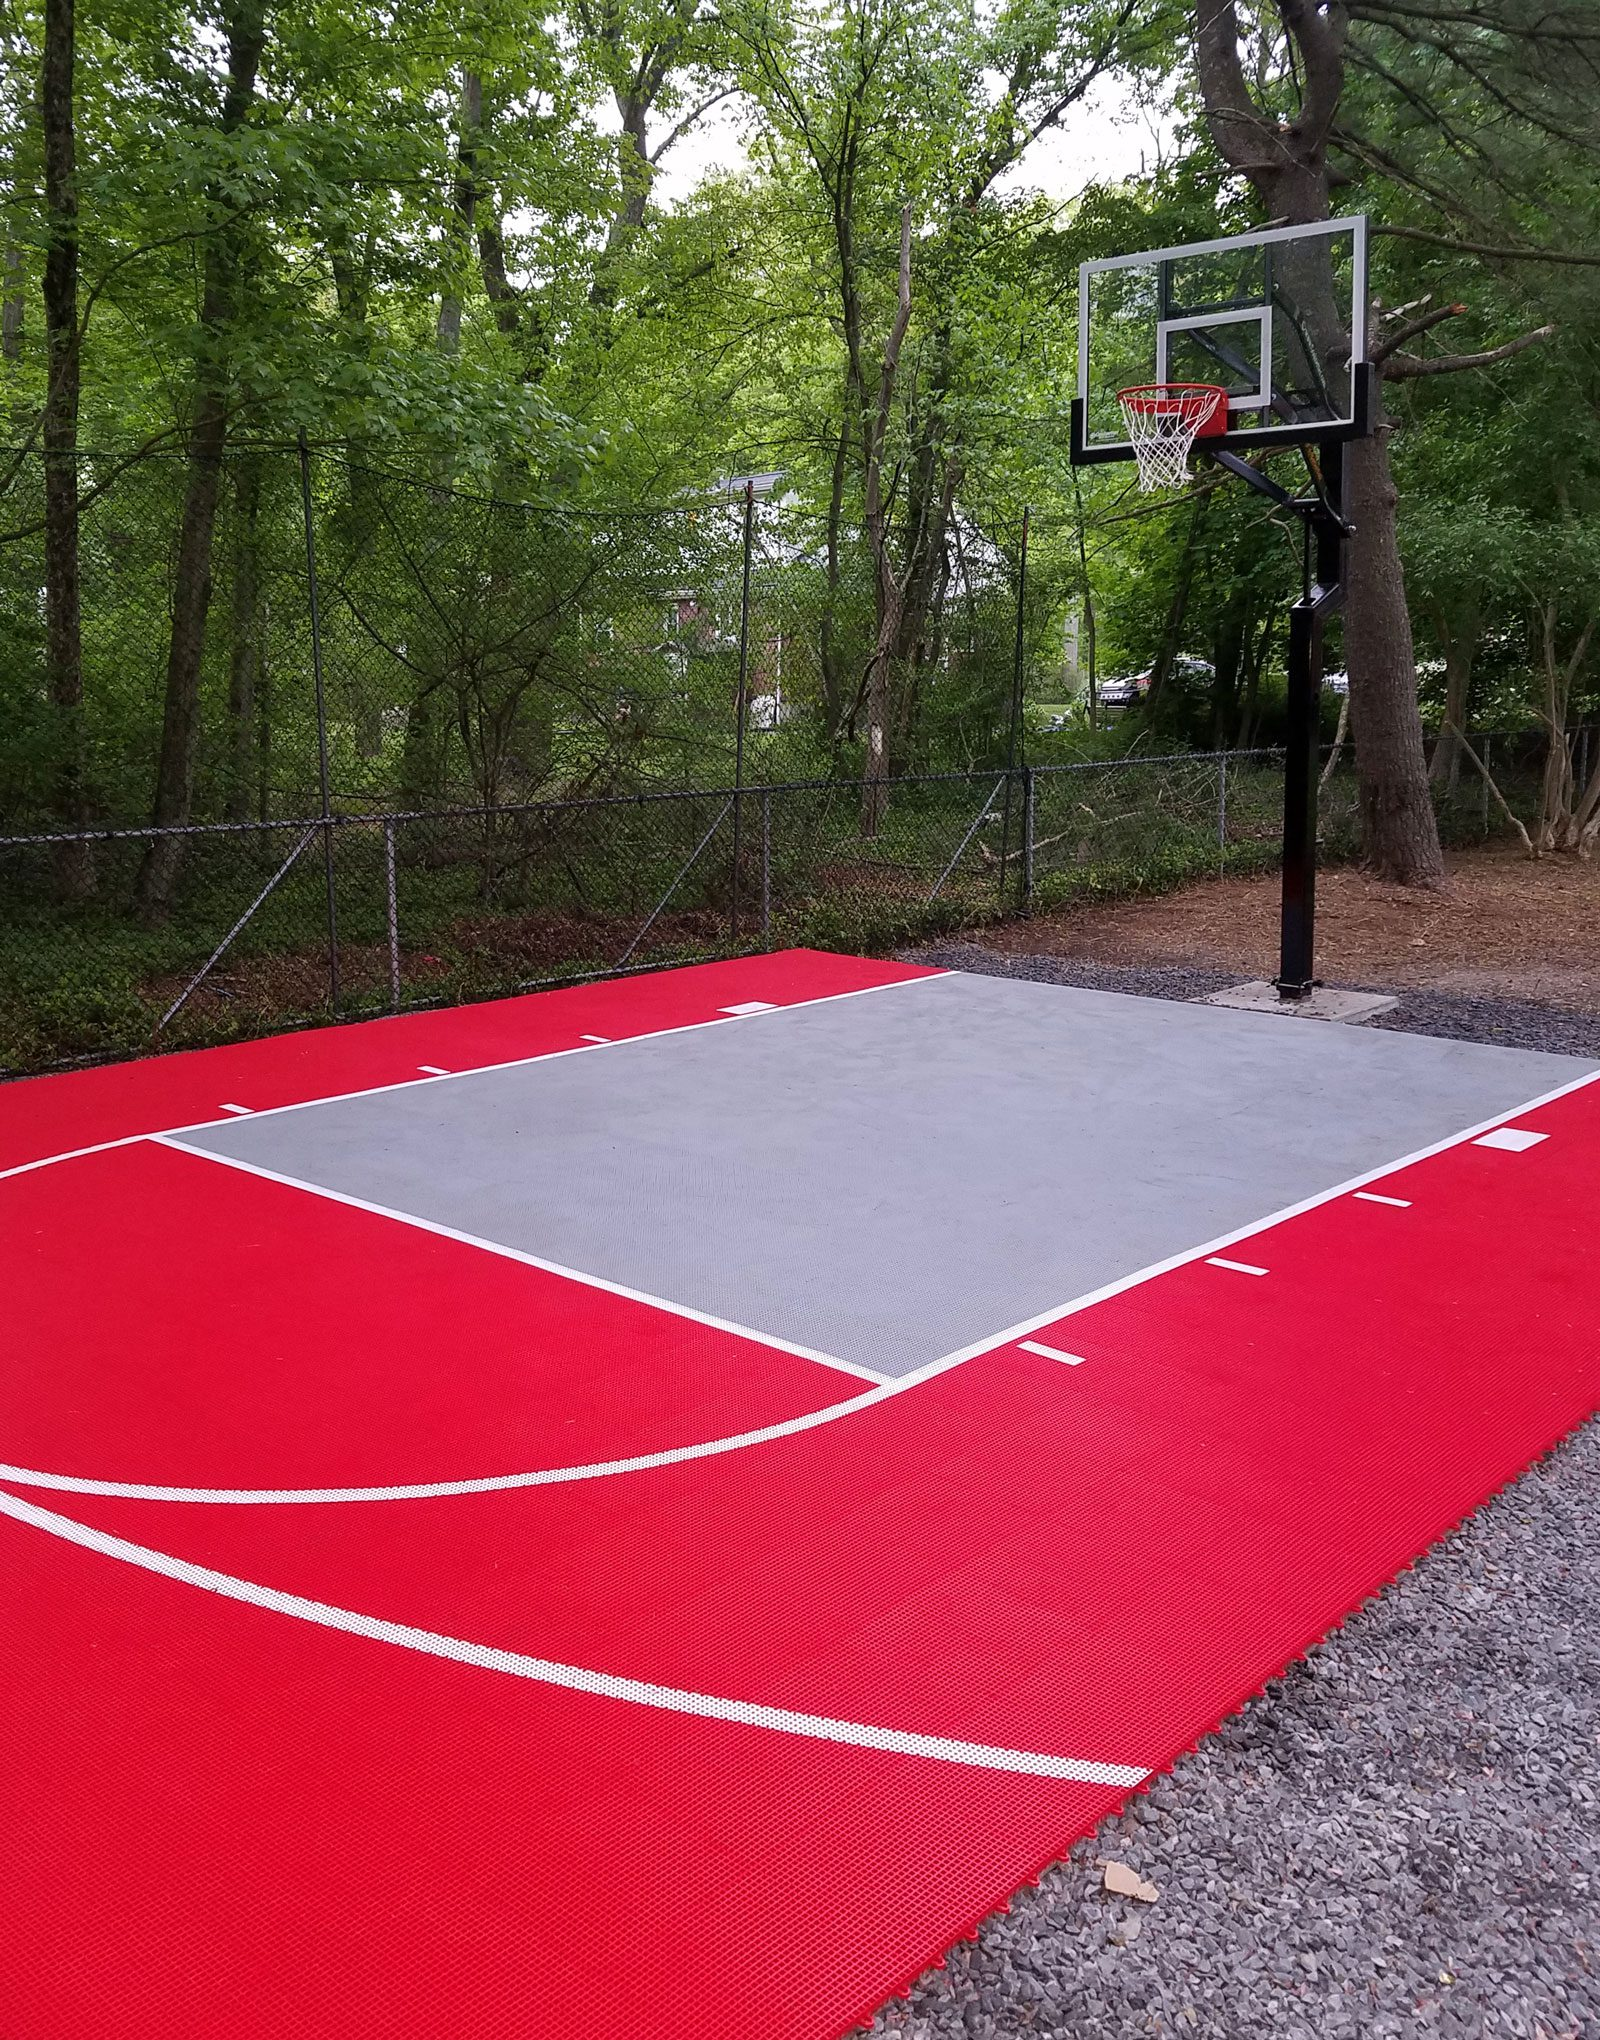 Red and gray backyard basketball court